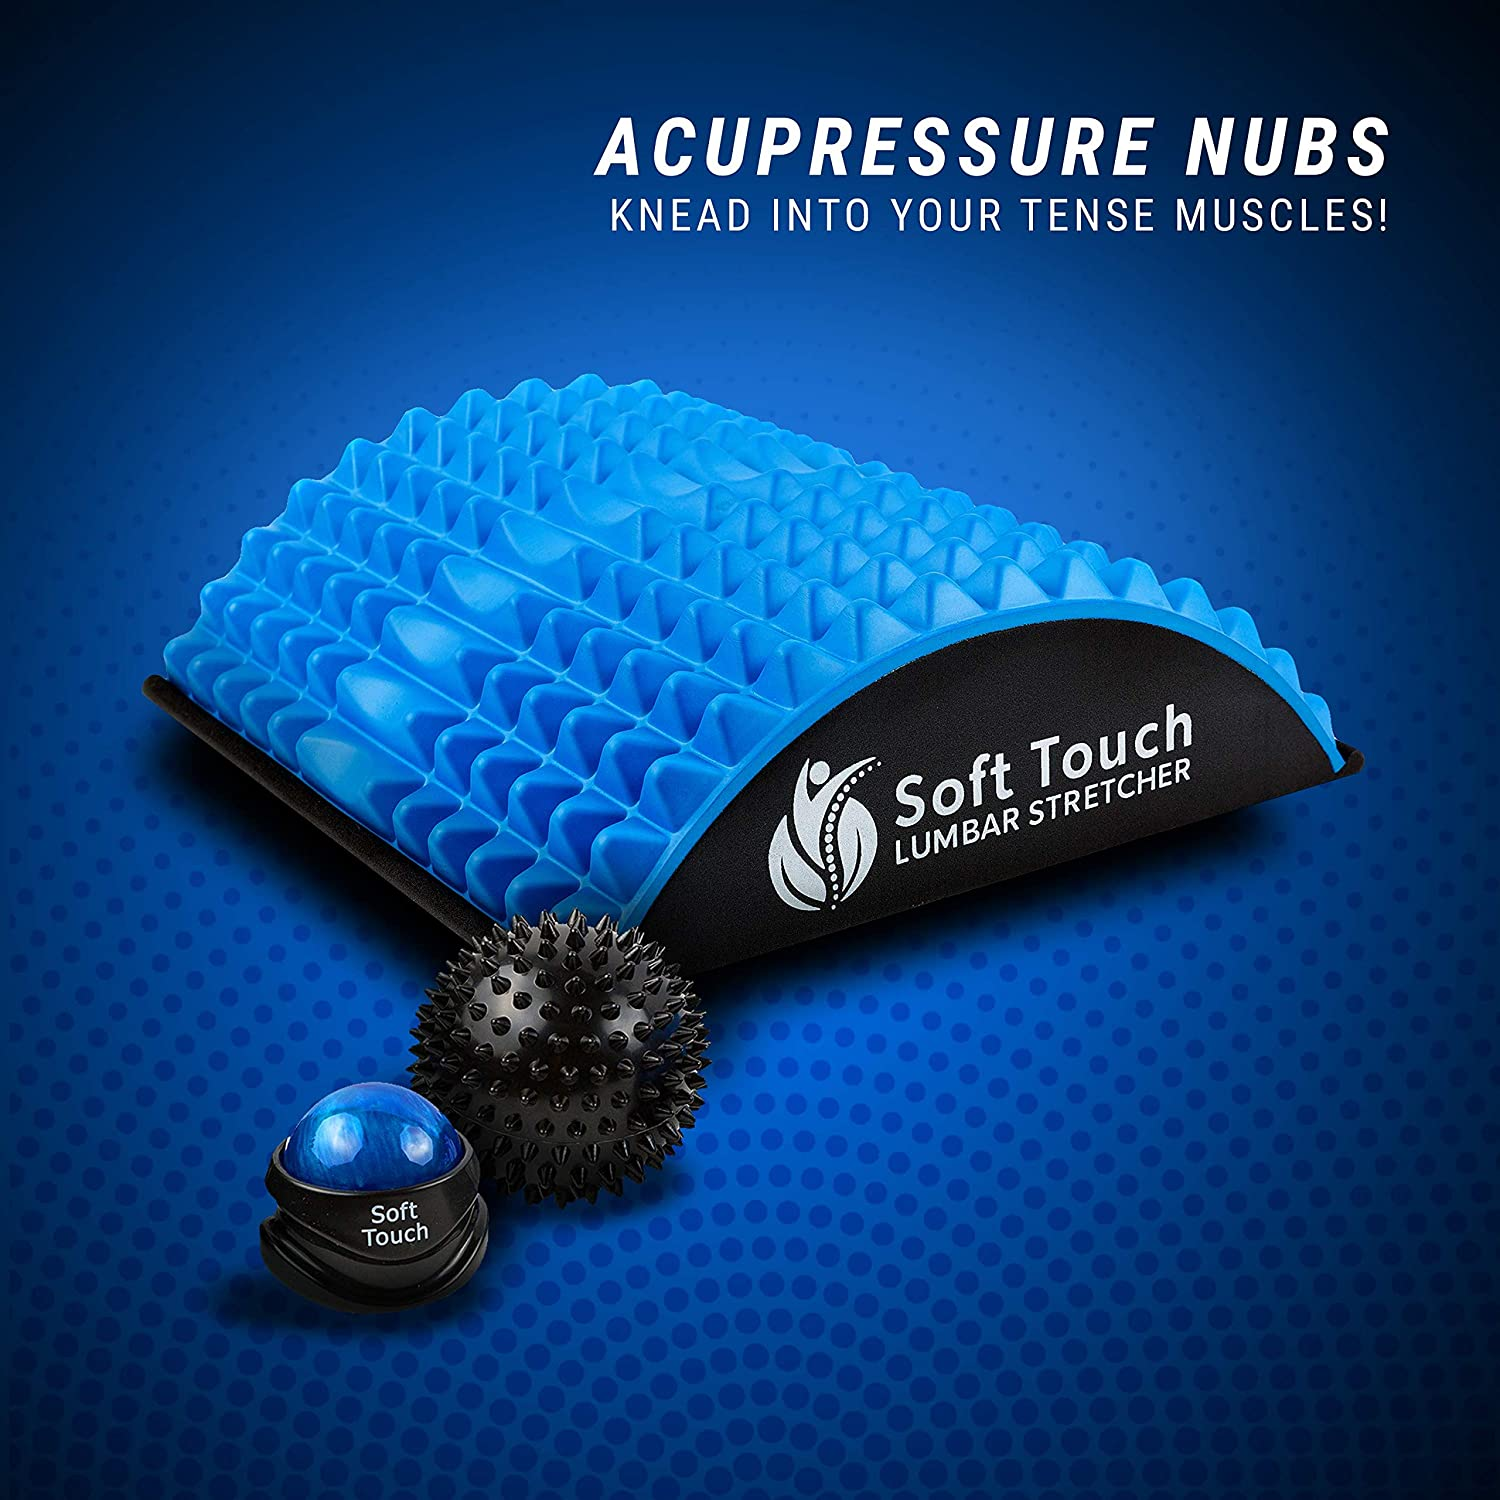 Soft Touch Back Pain Relief   Sciatica Pain Relief   Spinal Stenosis Pain Relief   Extra Firm Lower Back Stretcher   Neck Pain. Bonus! Two Massage Balls Included for Back Pain! (Blue, EVA Foam)